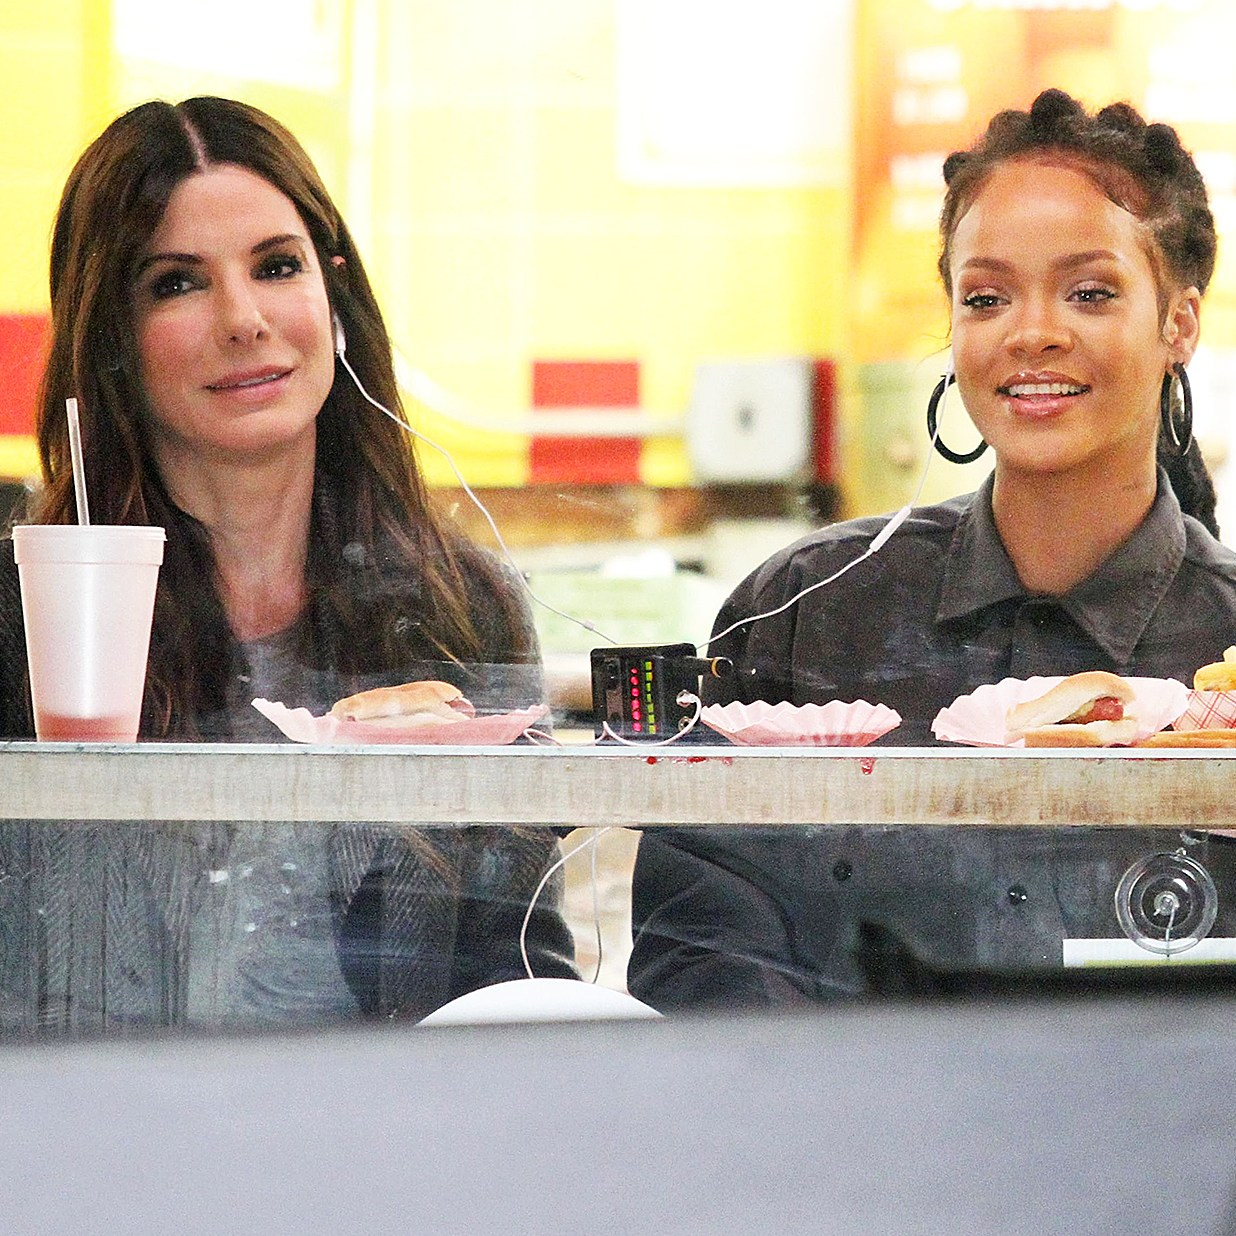 Fast Food Sandra Bullock Rihanna Papaya Dog